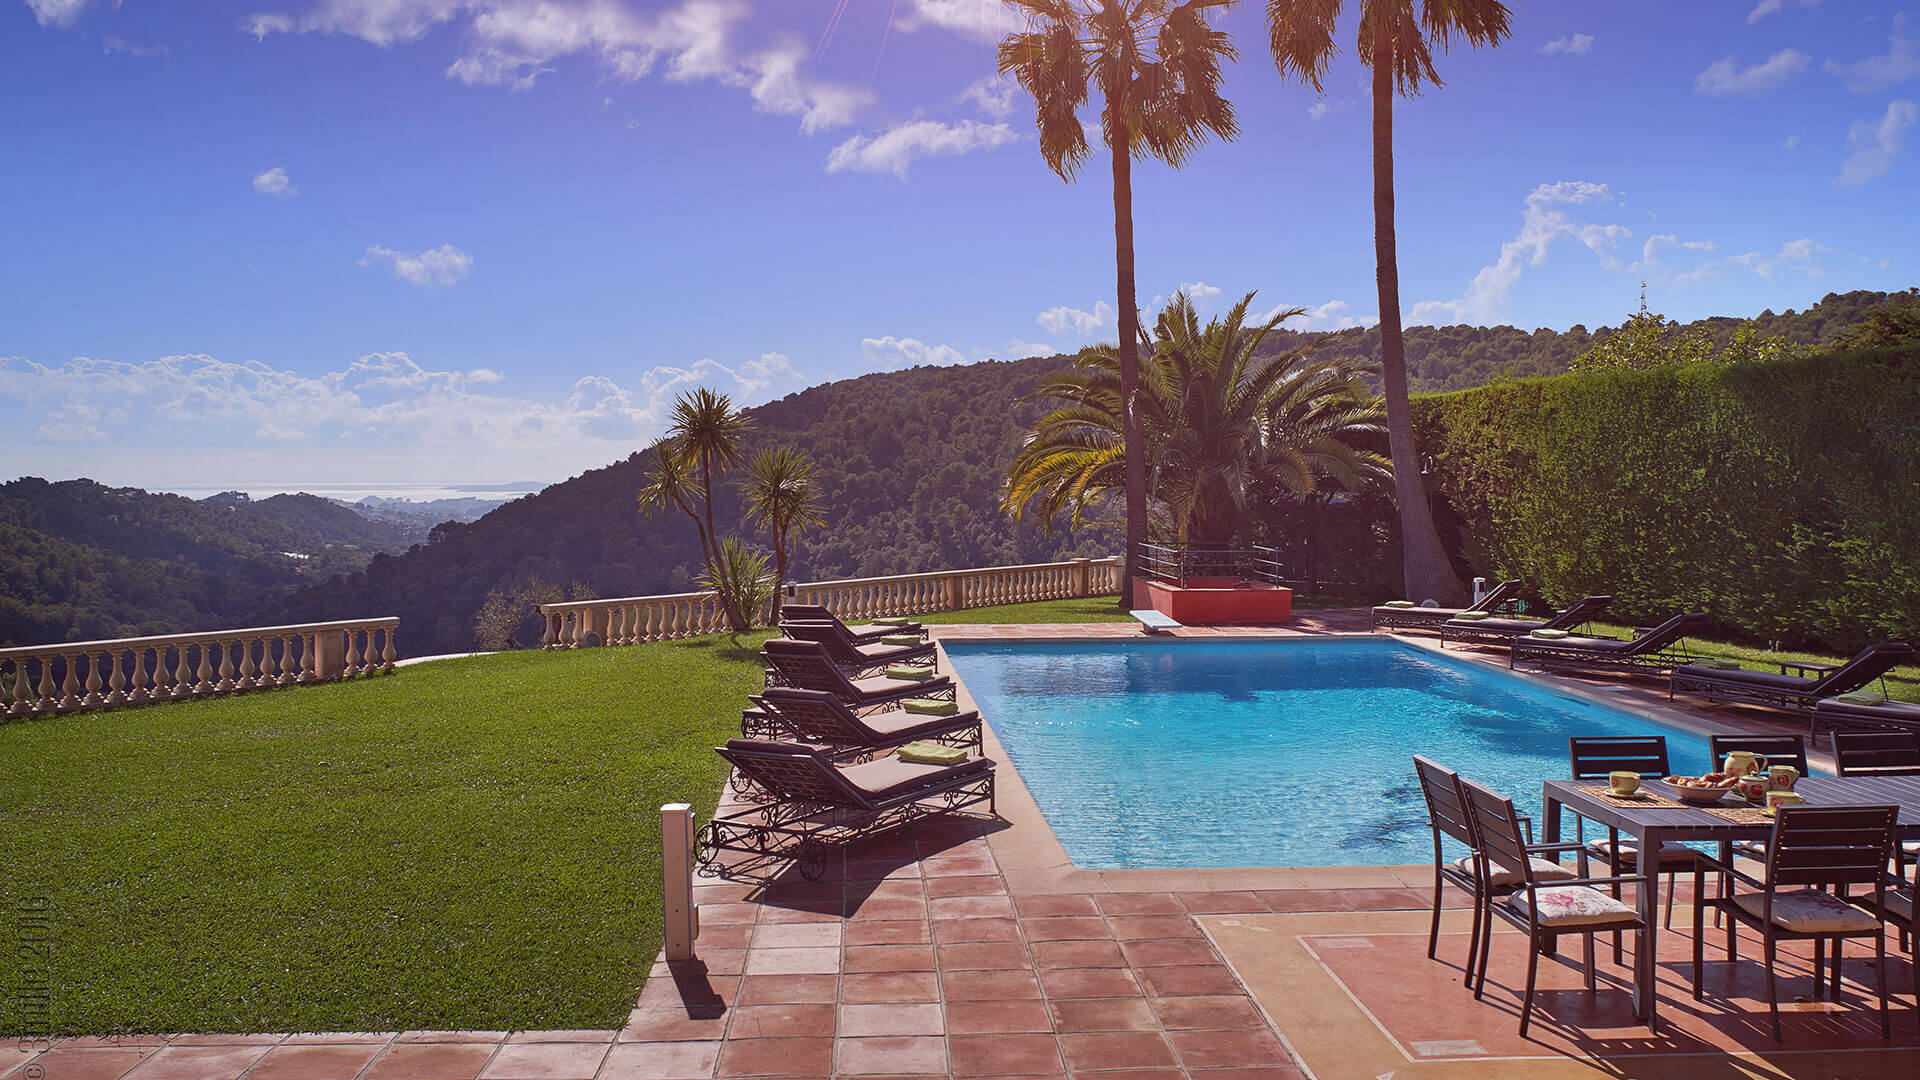 Villa Savoy swimming pool with view